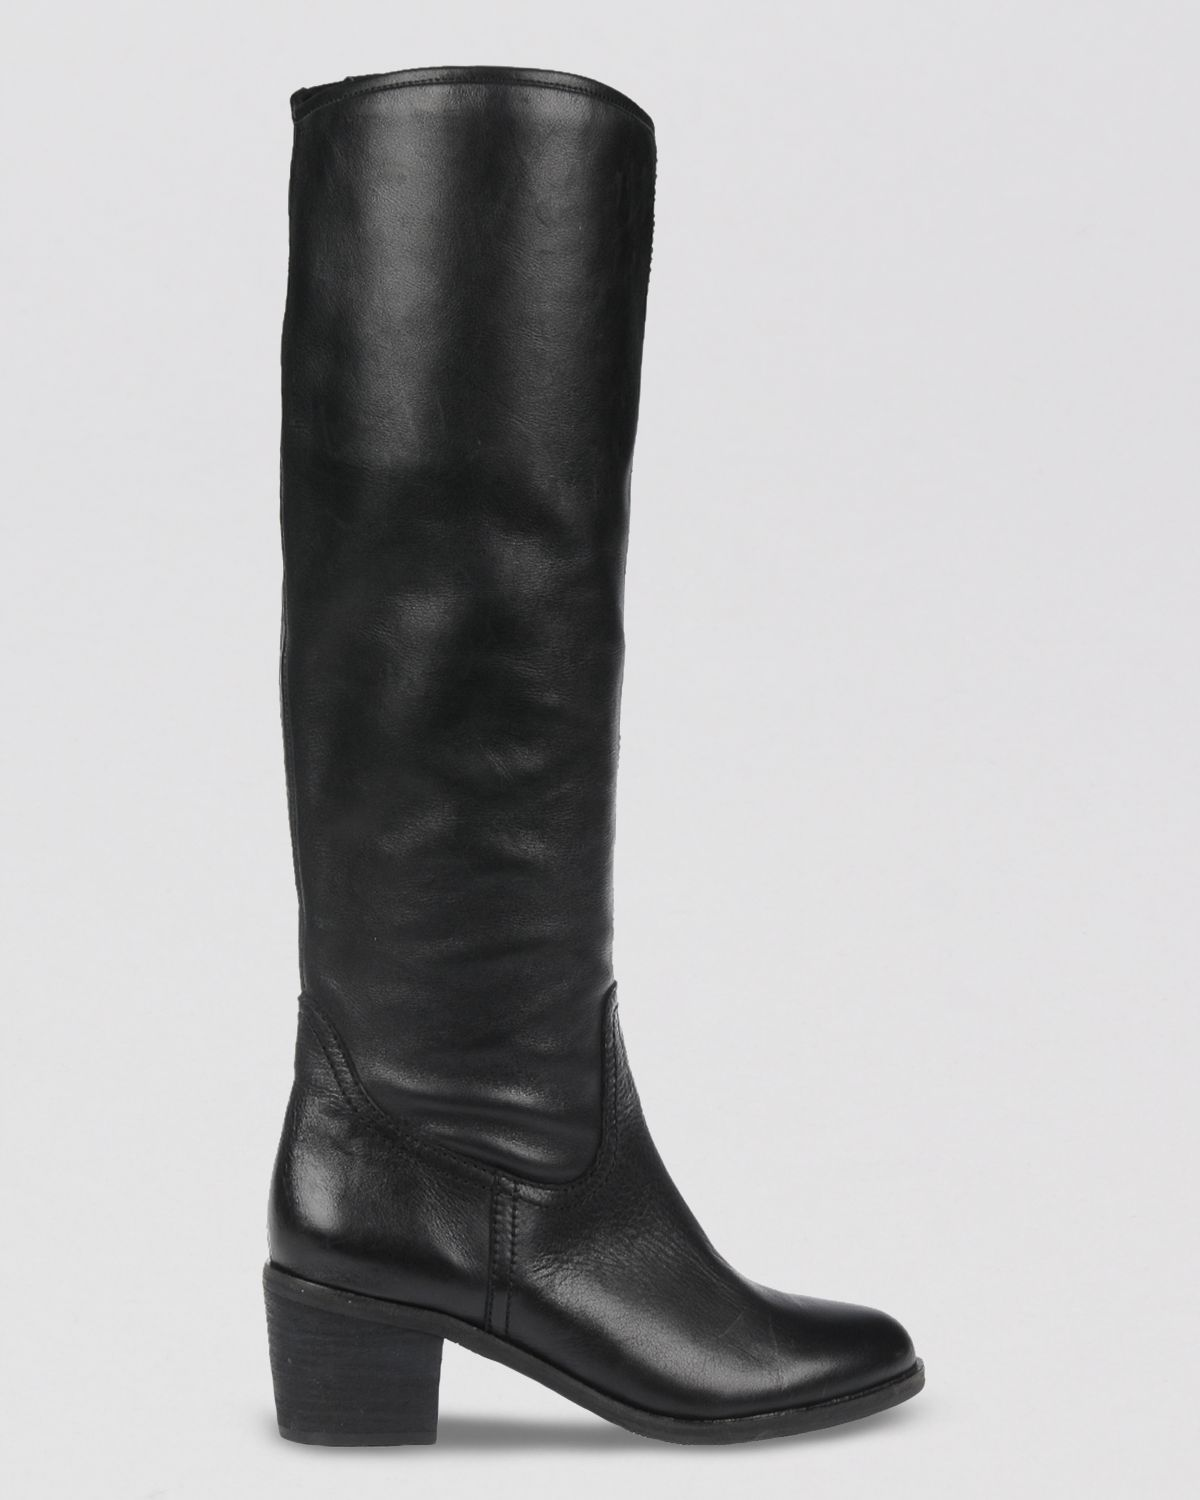 Sam Edelman Tall Boots Loren In Black